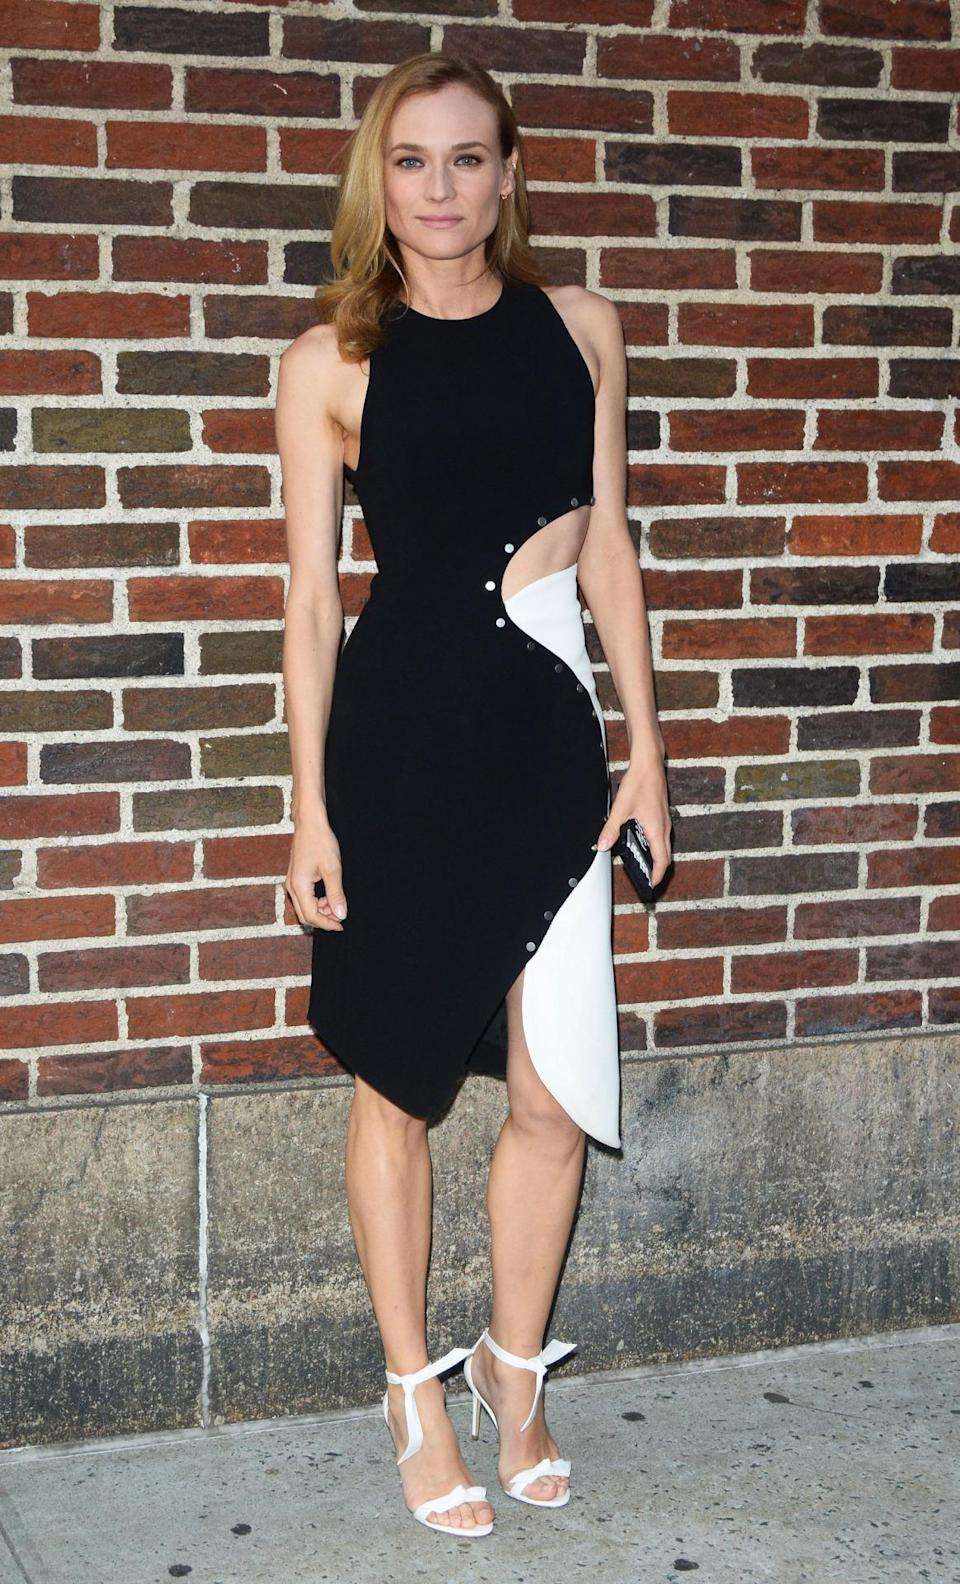 <p>We love this ying-yang inspired dress Diane Kruger wore while out and about in New York City. <i>(Photo by Patricia Schlein/Star Max/GC Images)</i></p>